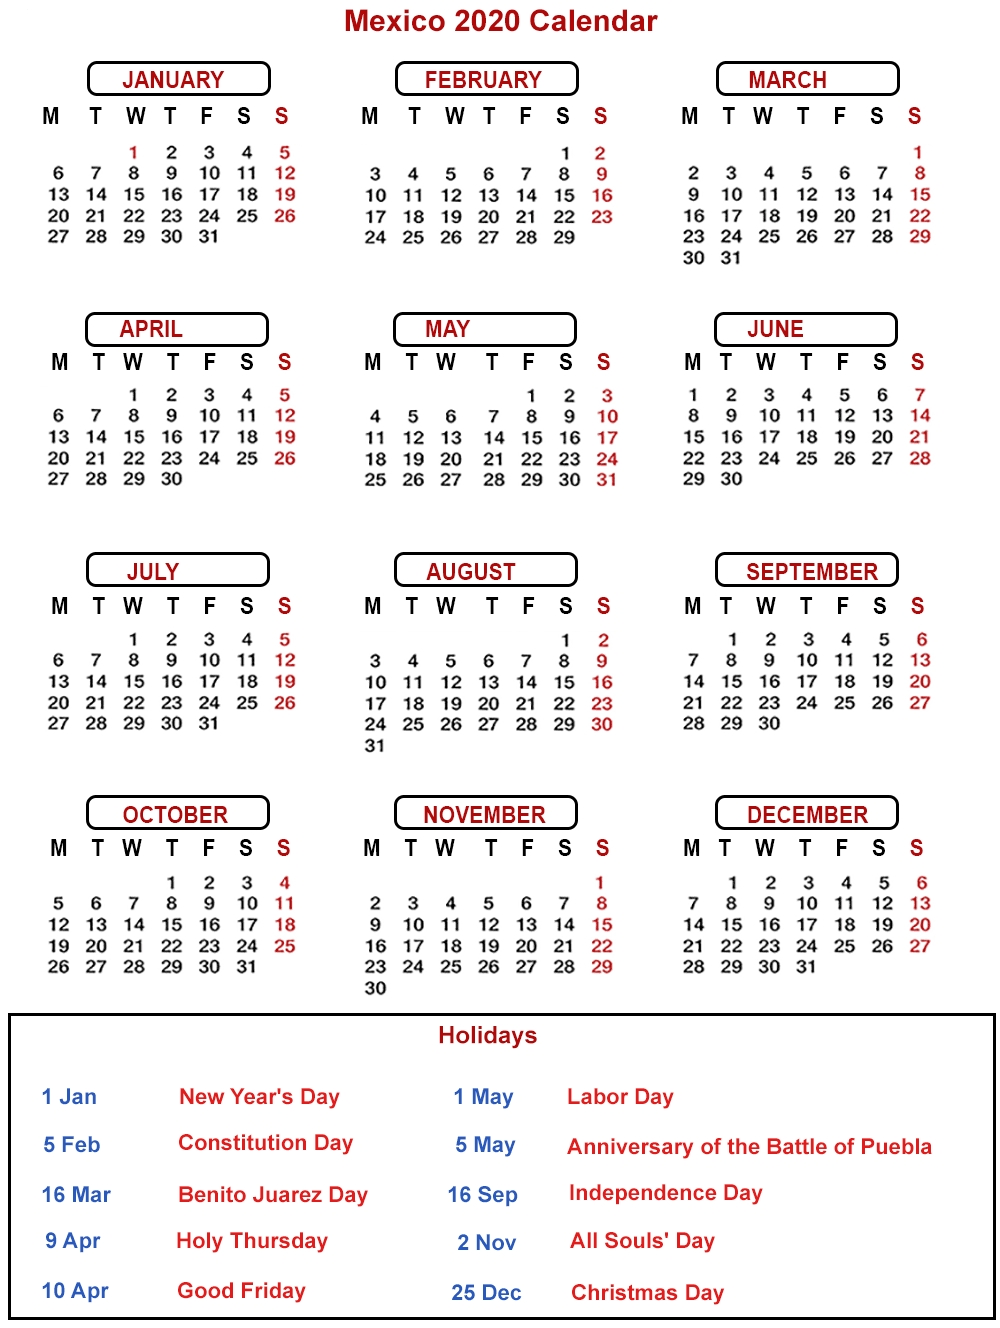 Free 2020 Mexico Printable Calendar With Public Holidays